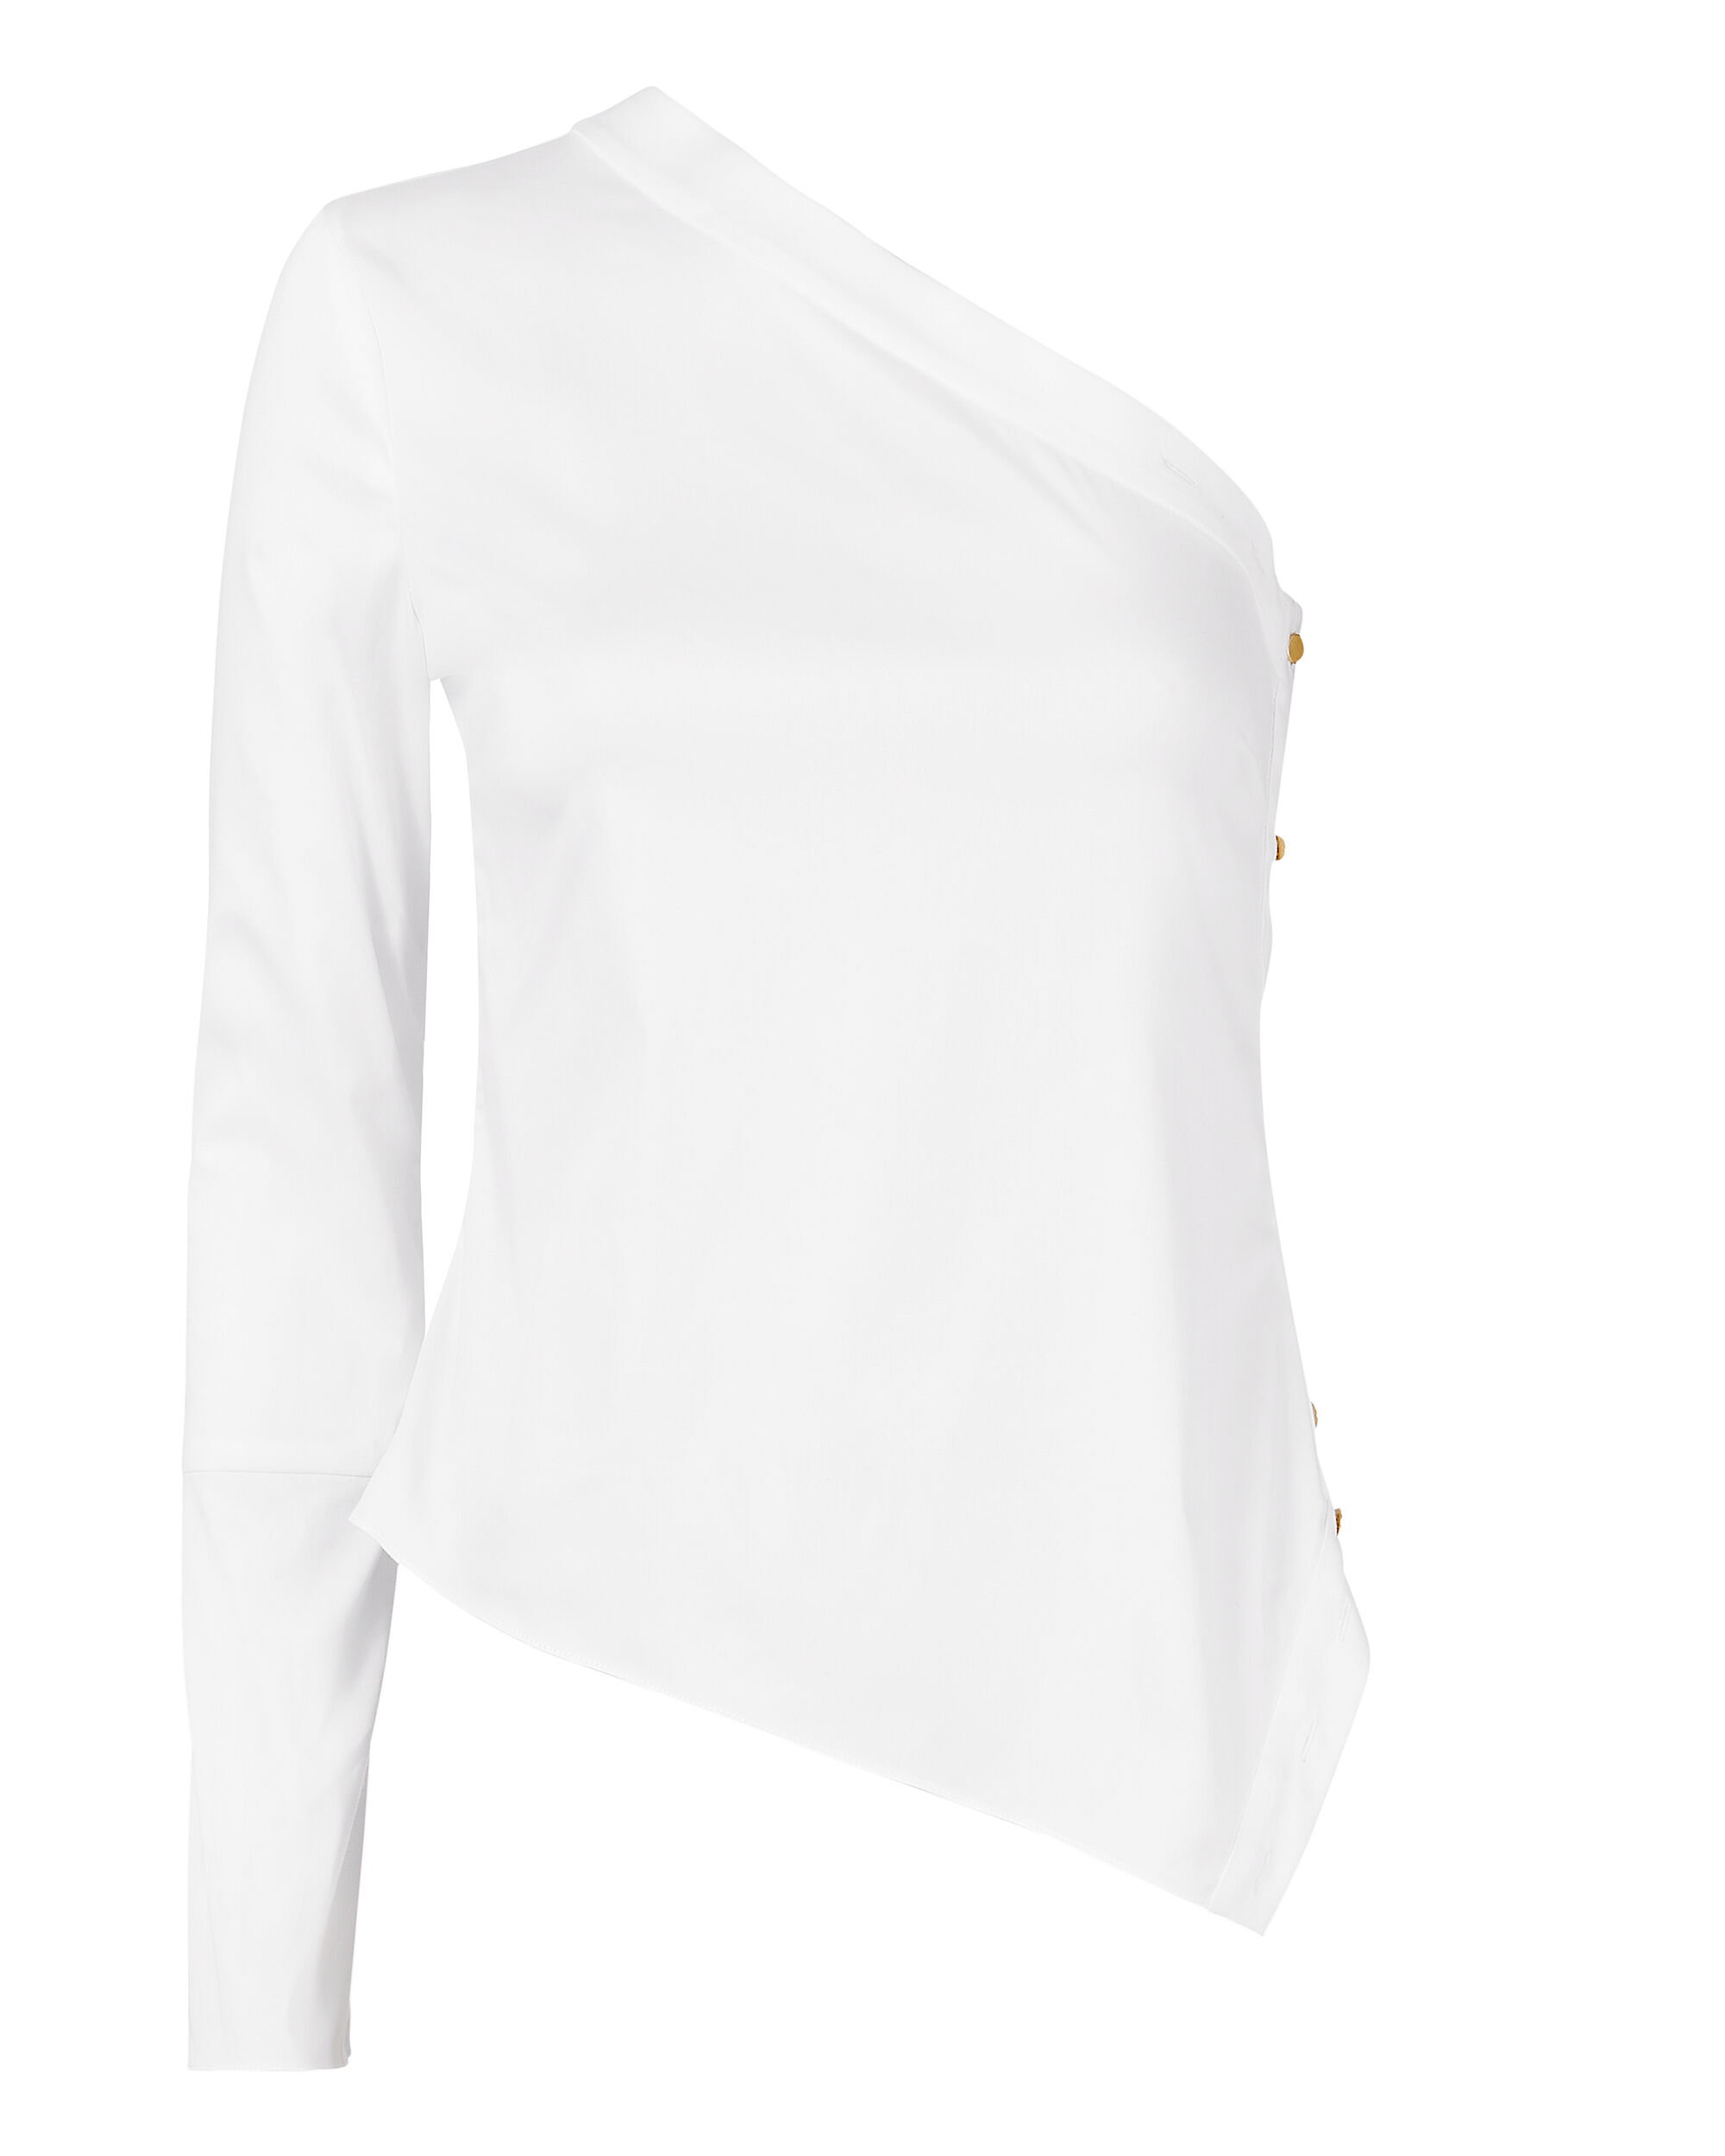 White One Shoulder Button Blouse, WHITE, hi-res